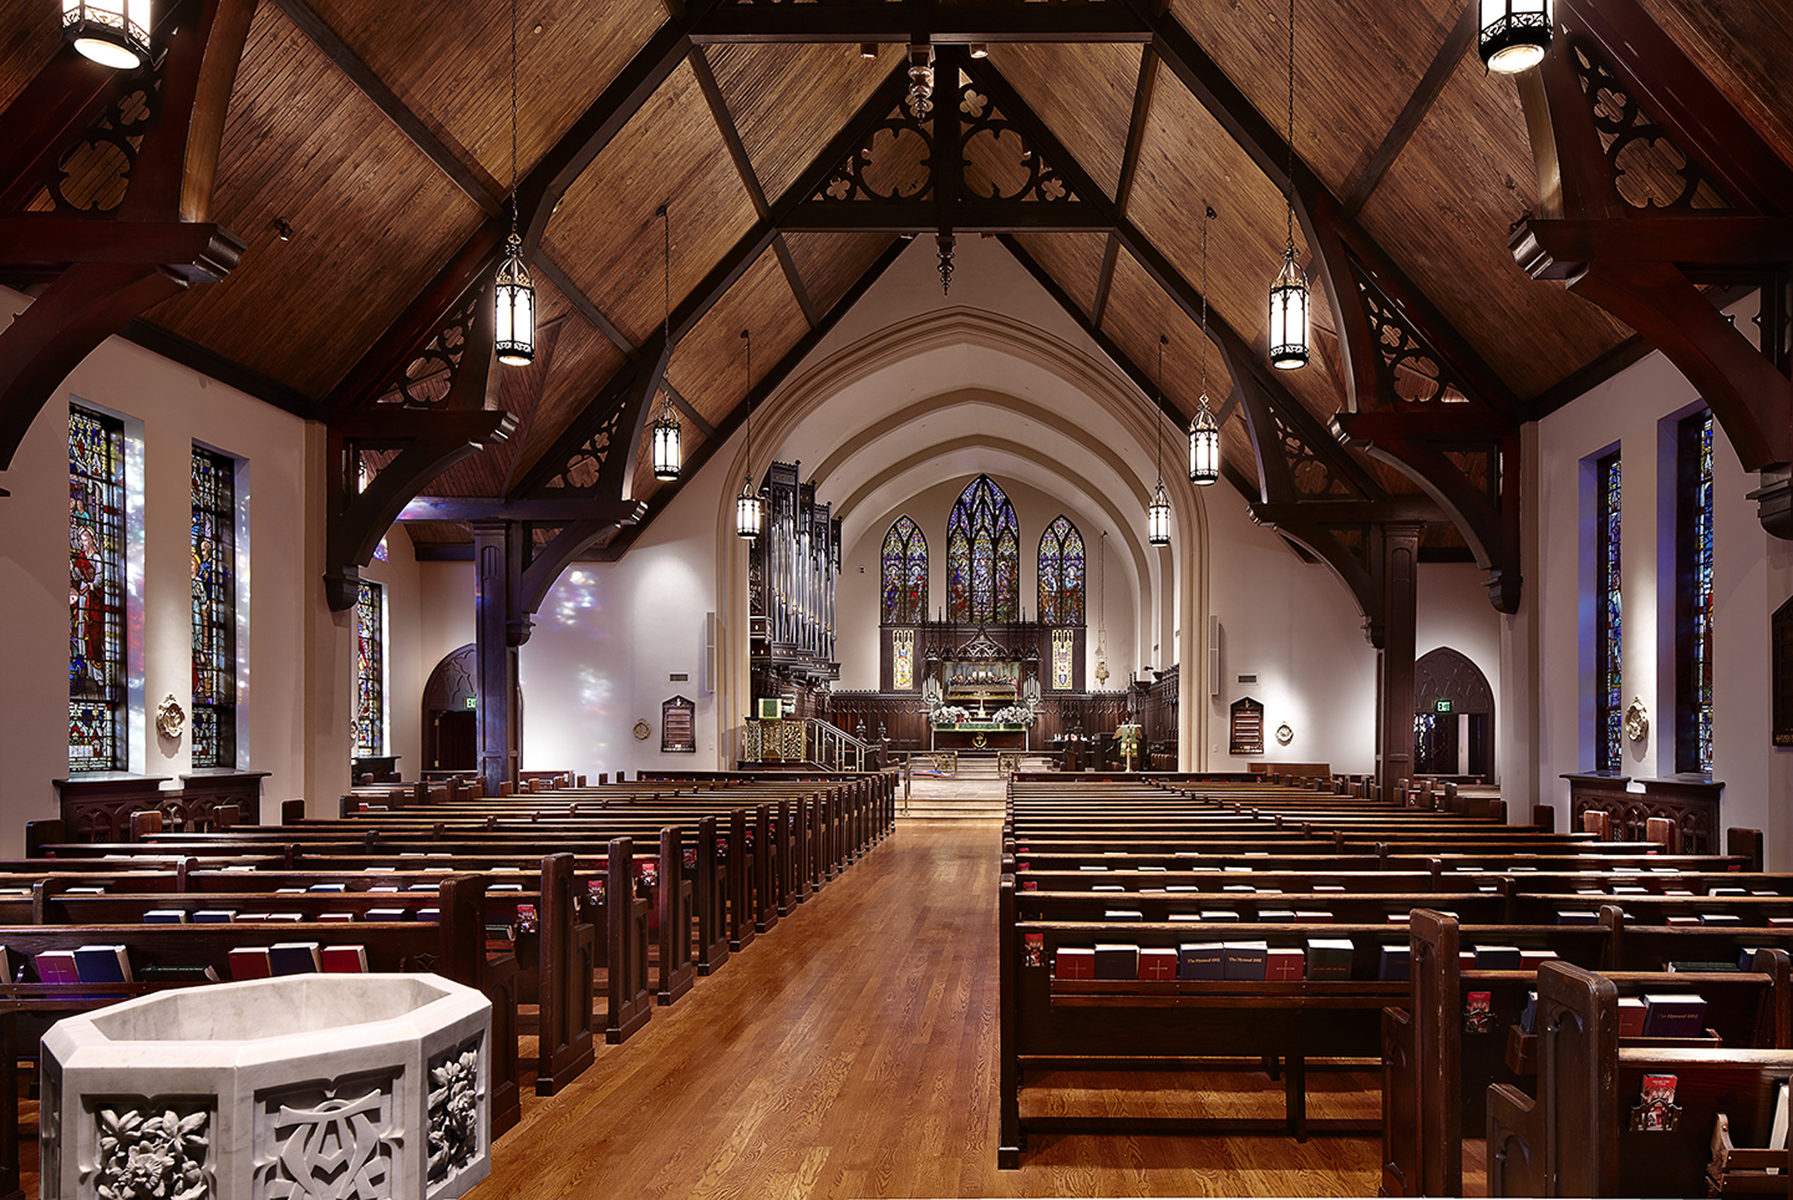 Grace-St. Luke's Episcopal Church